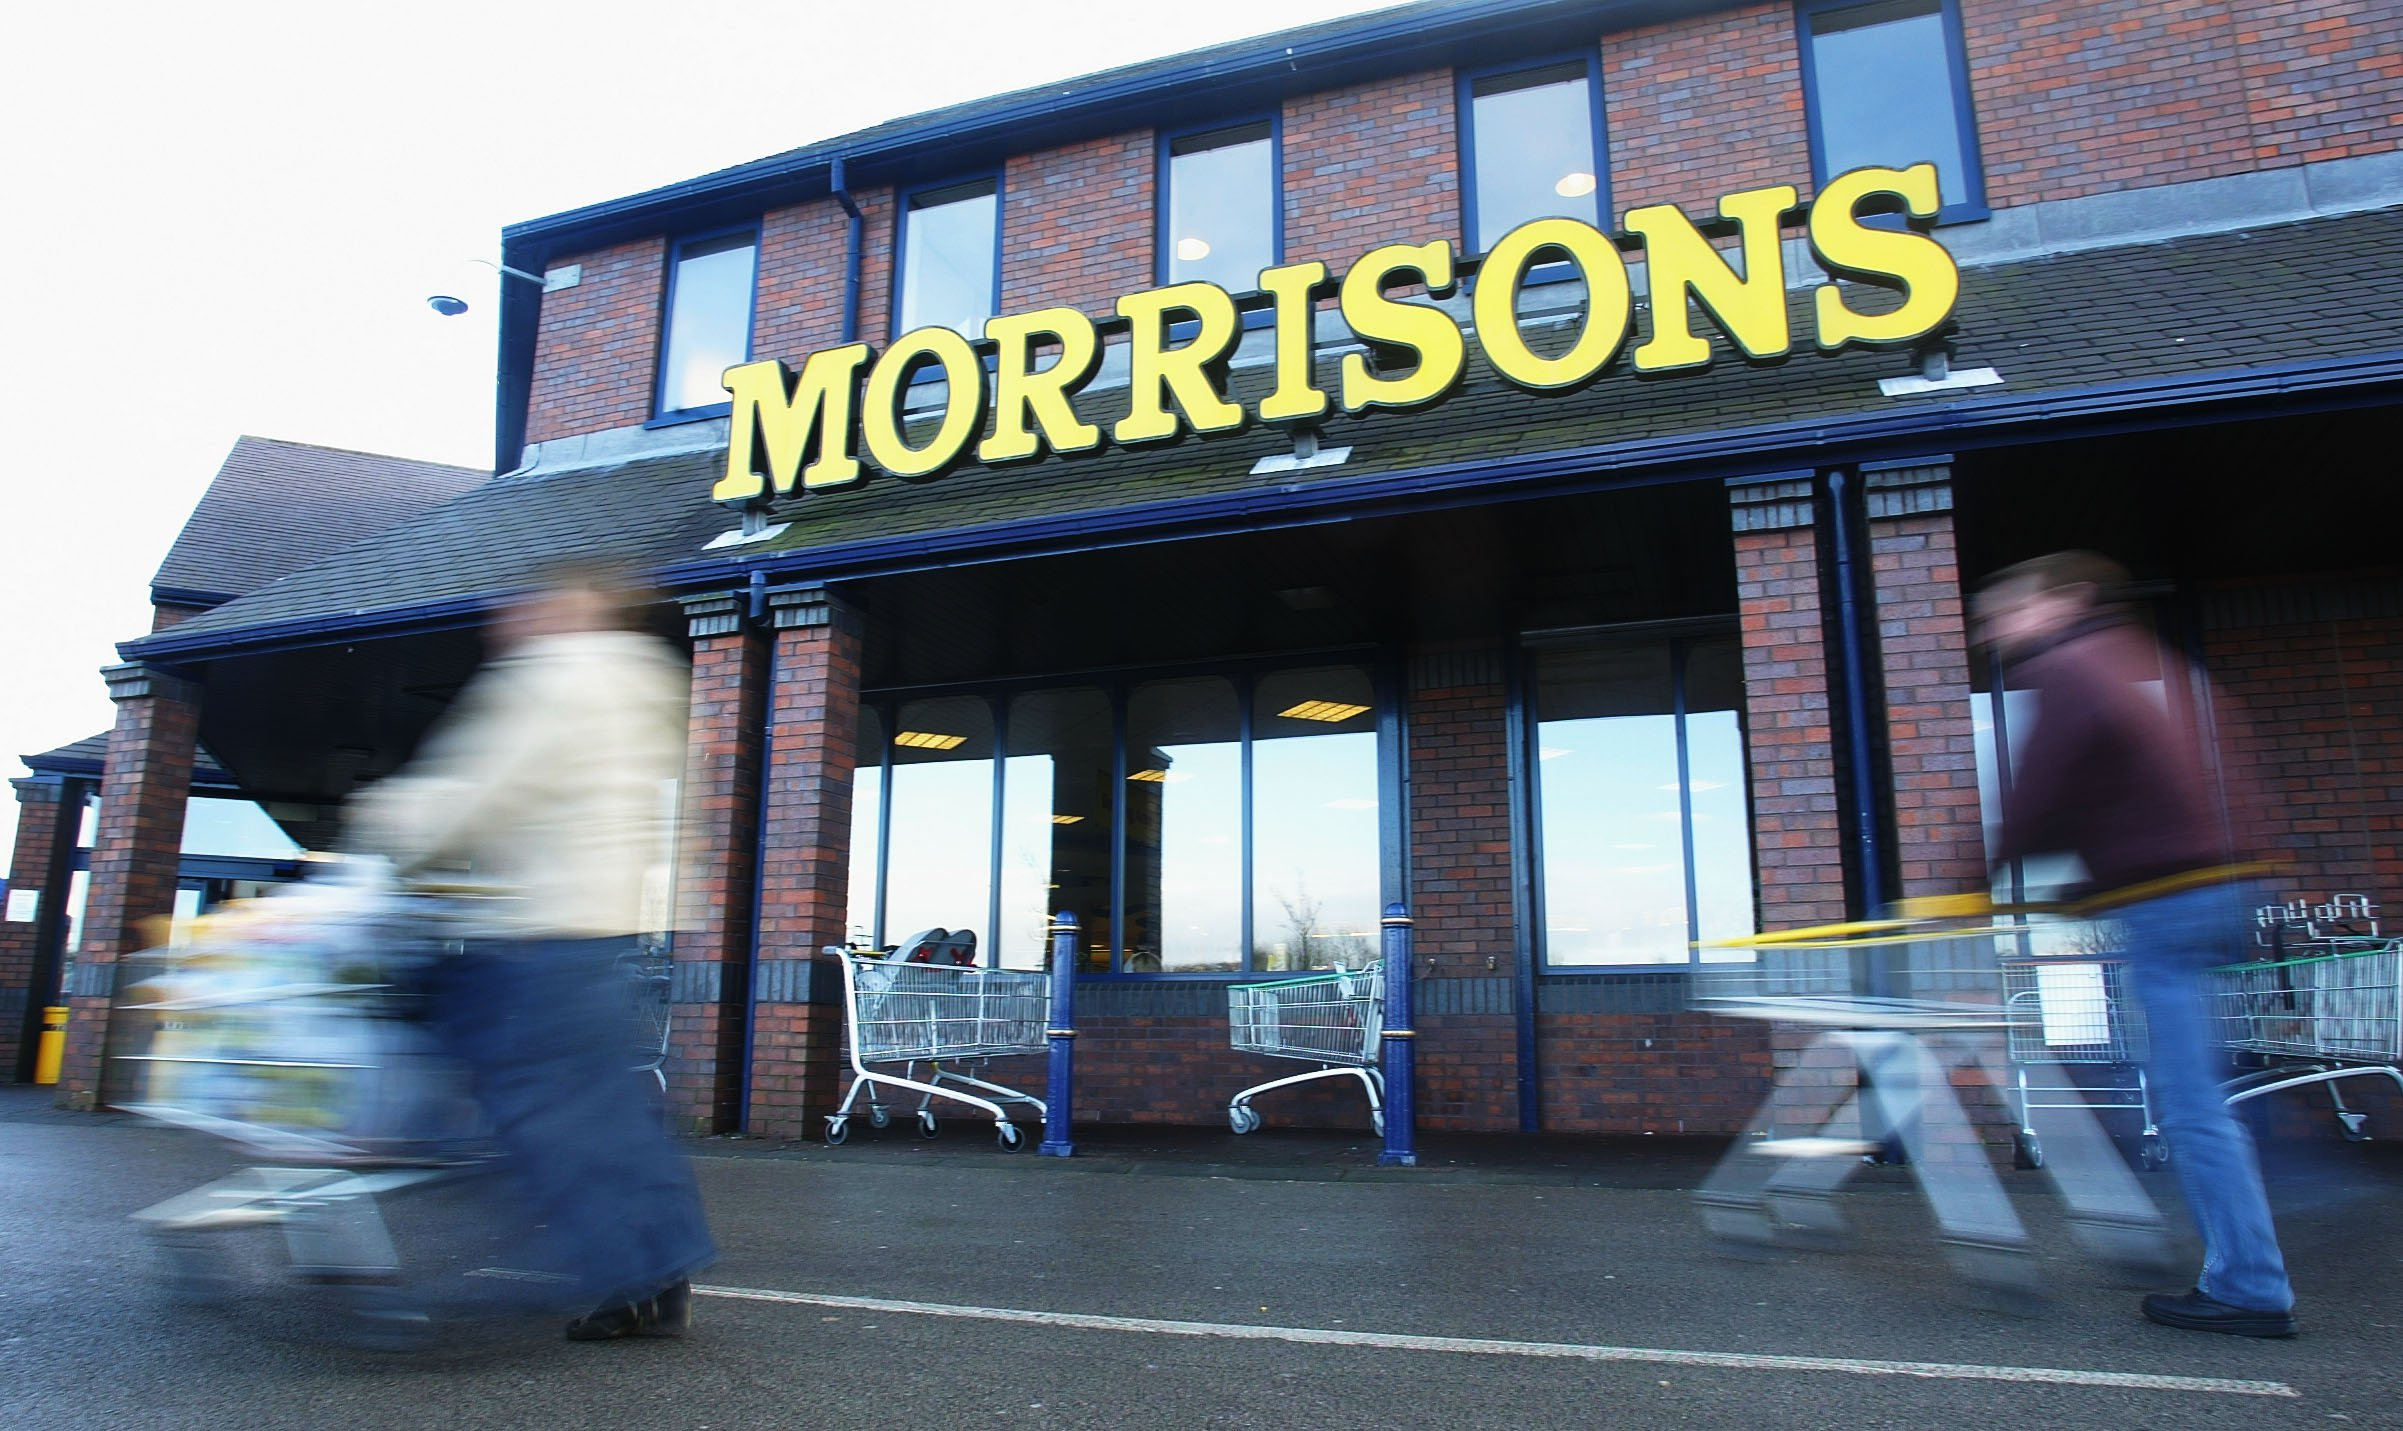 ROCHDALE - JANUARY 9: A shopper pushes her cart outside a Morrisons supermarket January 9, 2003 in Rochdale, Lancashire. The mid-size British supermarket chain, Morrisons, announced its bid to overtake rival Safeway in a 2.9 billion pound deal that would combine the firm with 589 stores and a 16 percent market share. (Photo by Laurence Griffiths/Getty Images)